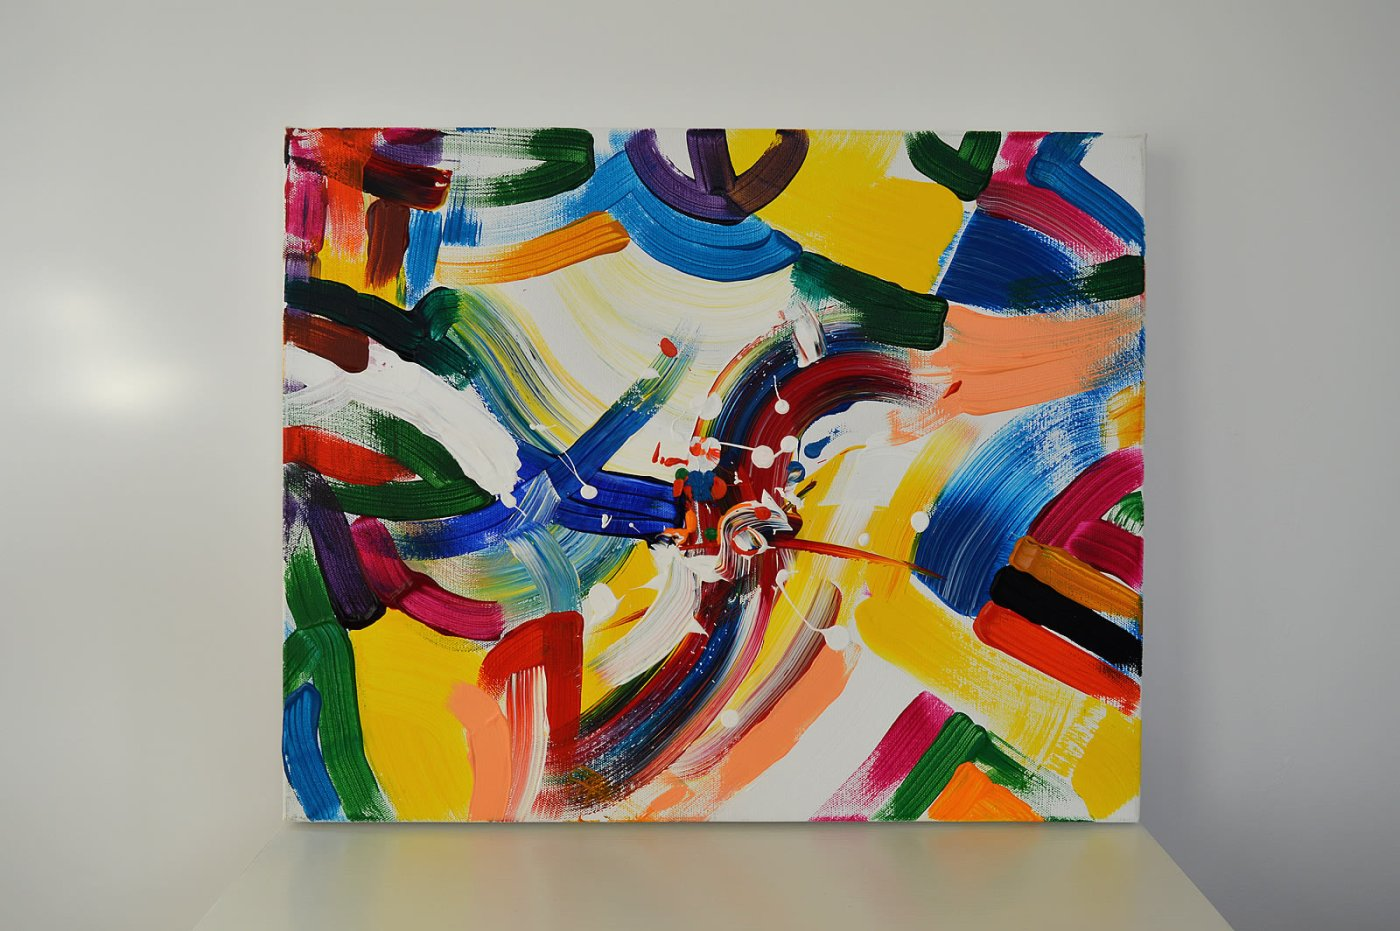 Music is Life, Painting No. 5 by Swav